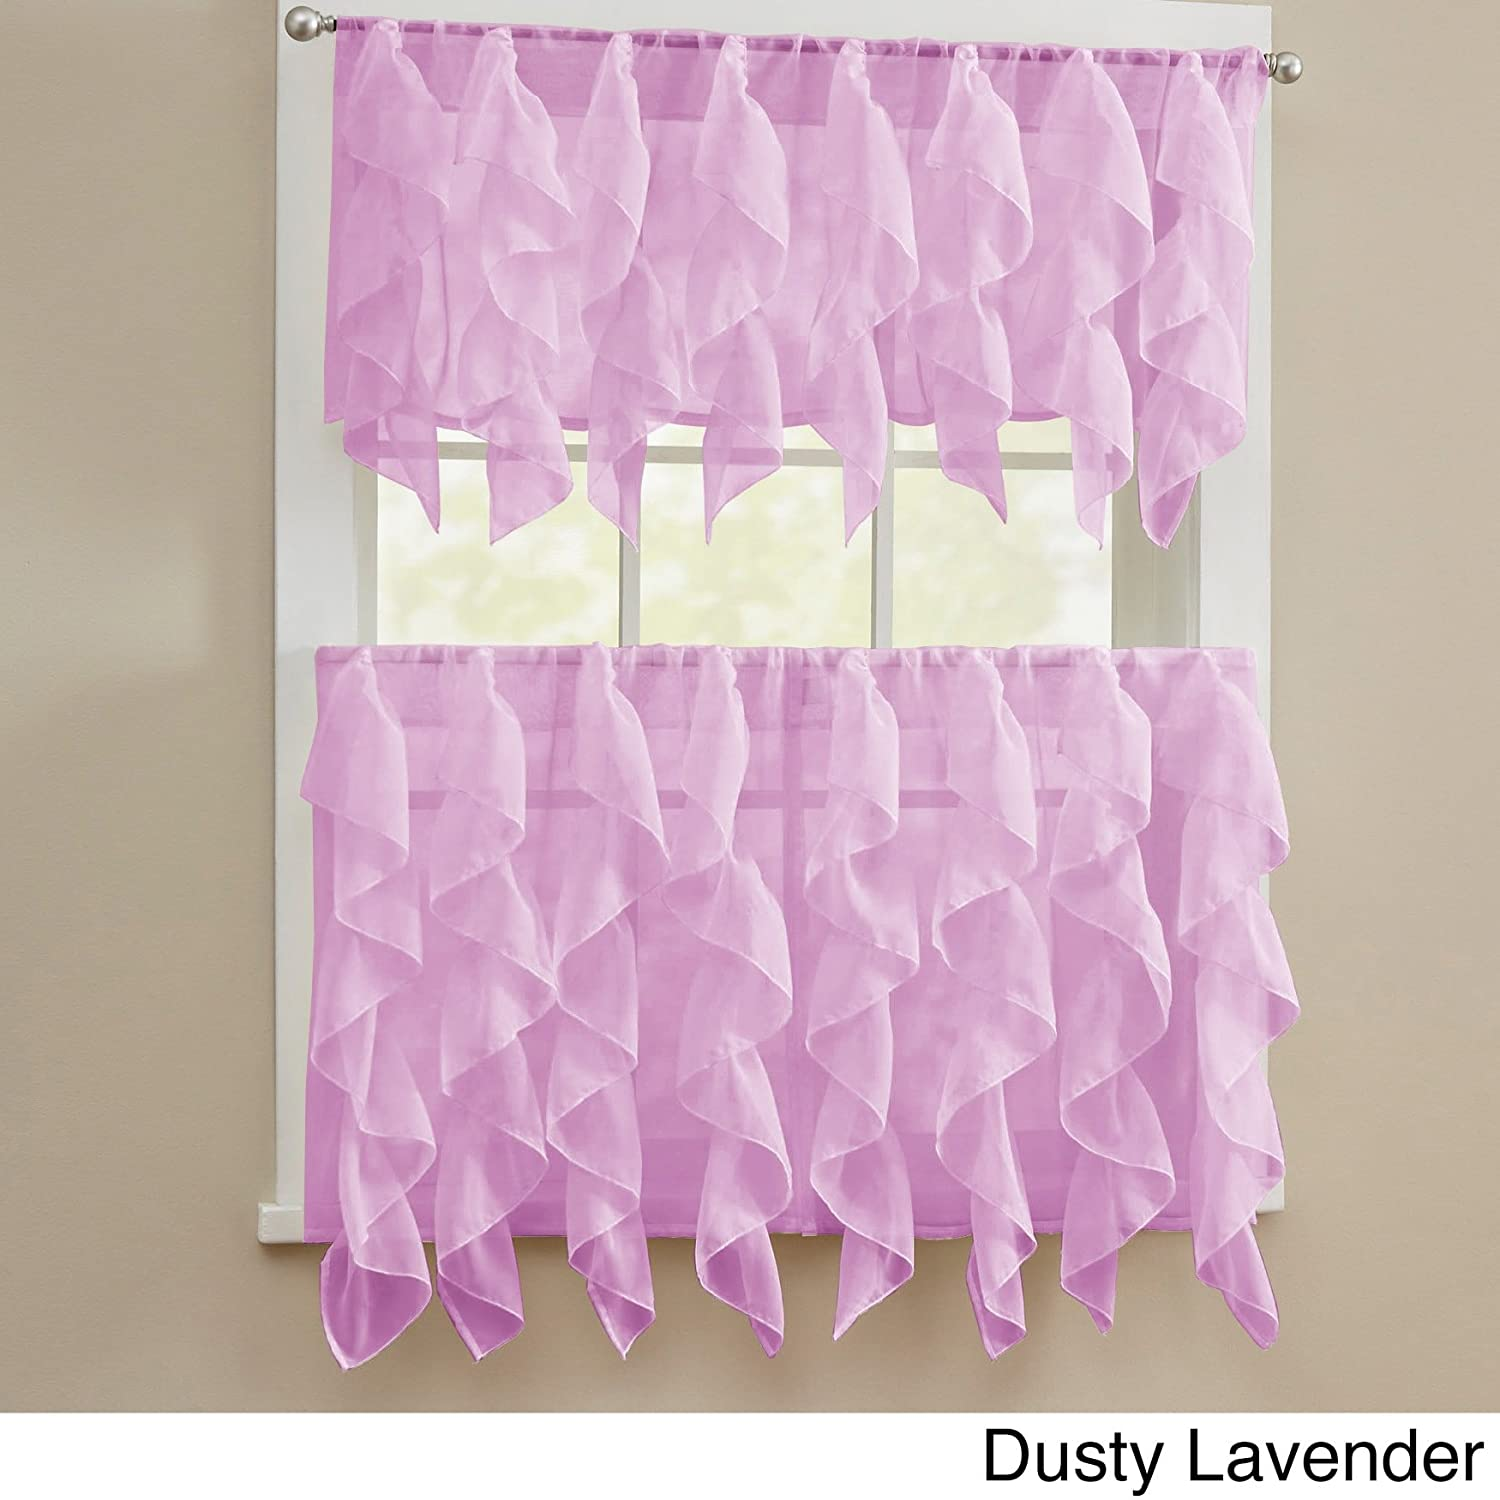 bed bath n more Chic Sheer Voile Vertical Ruffled Tier Window Curtain Valance or Tier Dusty Lavender 56 x 24